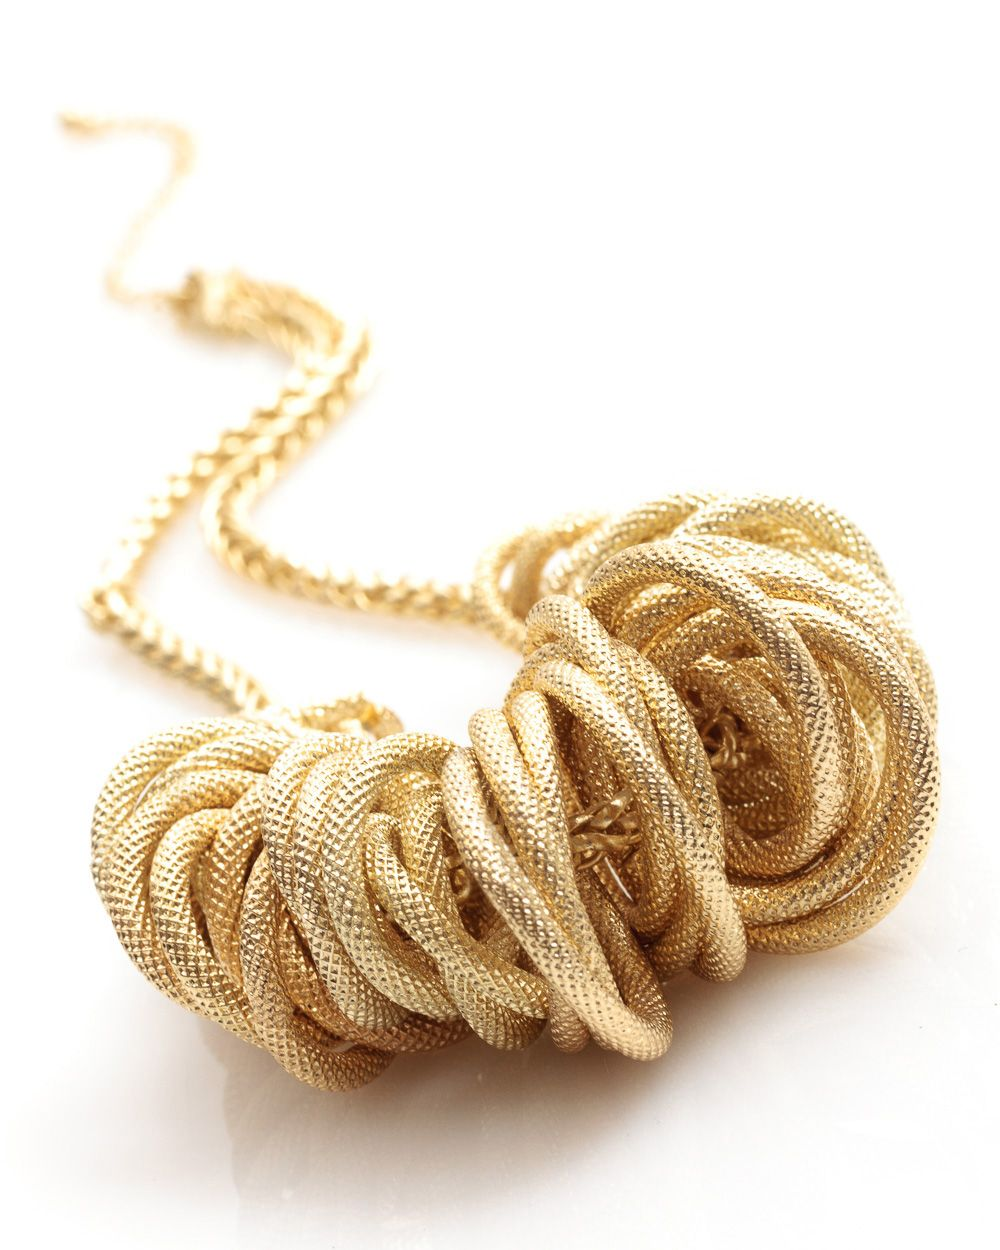 Textured ring necklace